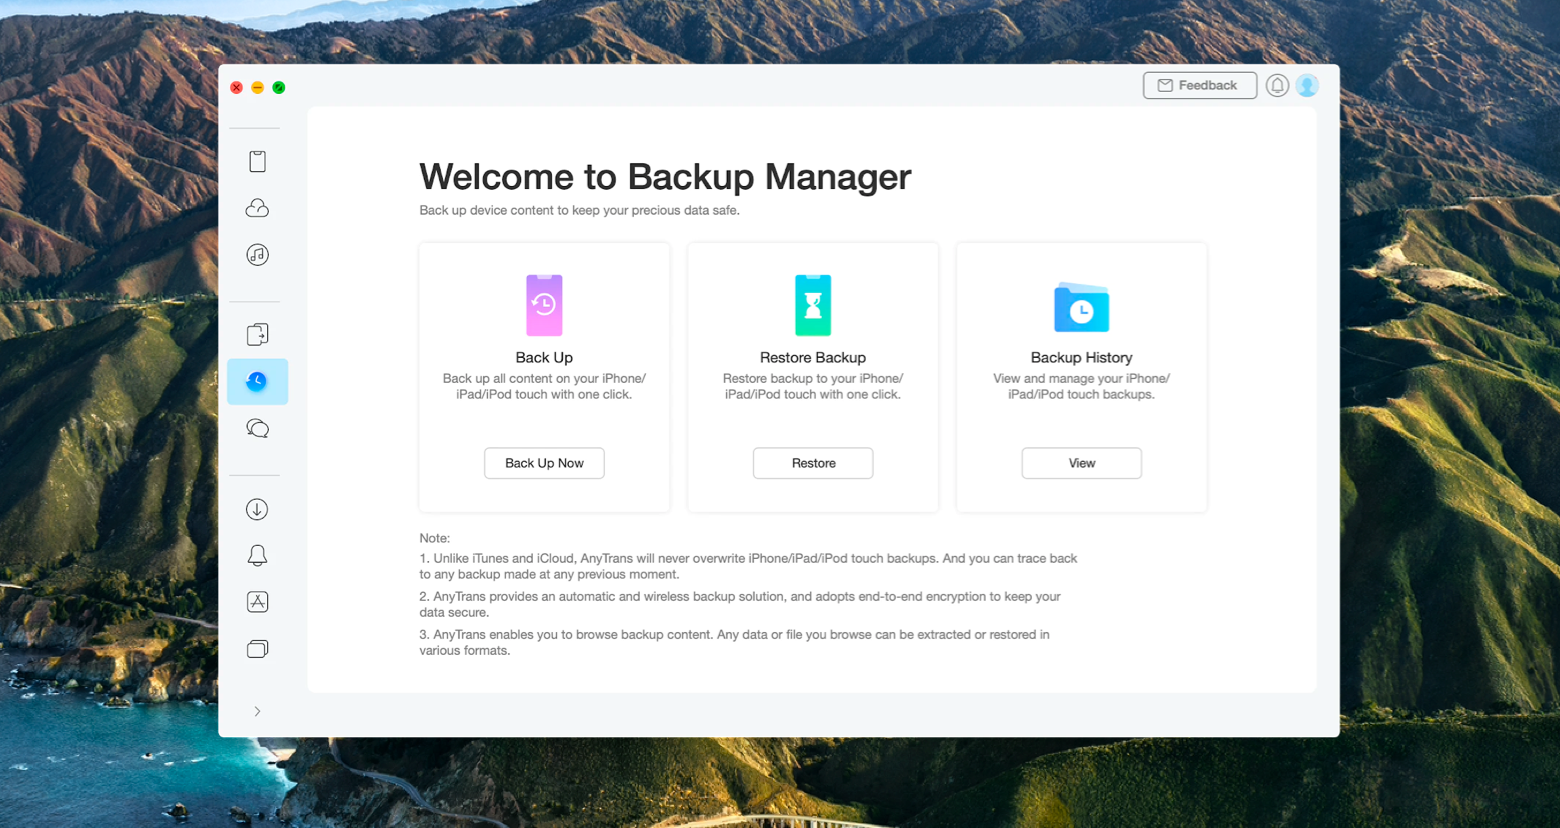 anytrans for ios iphone backup